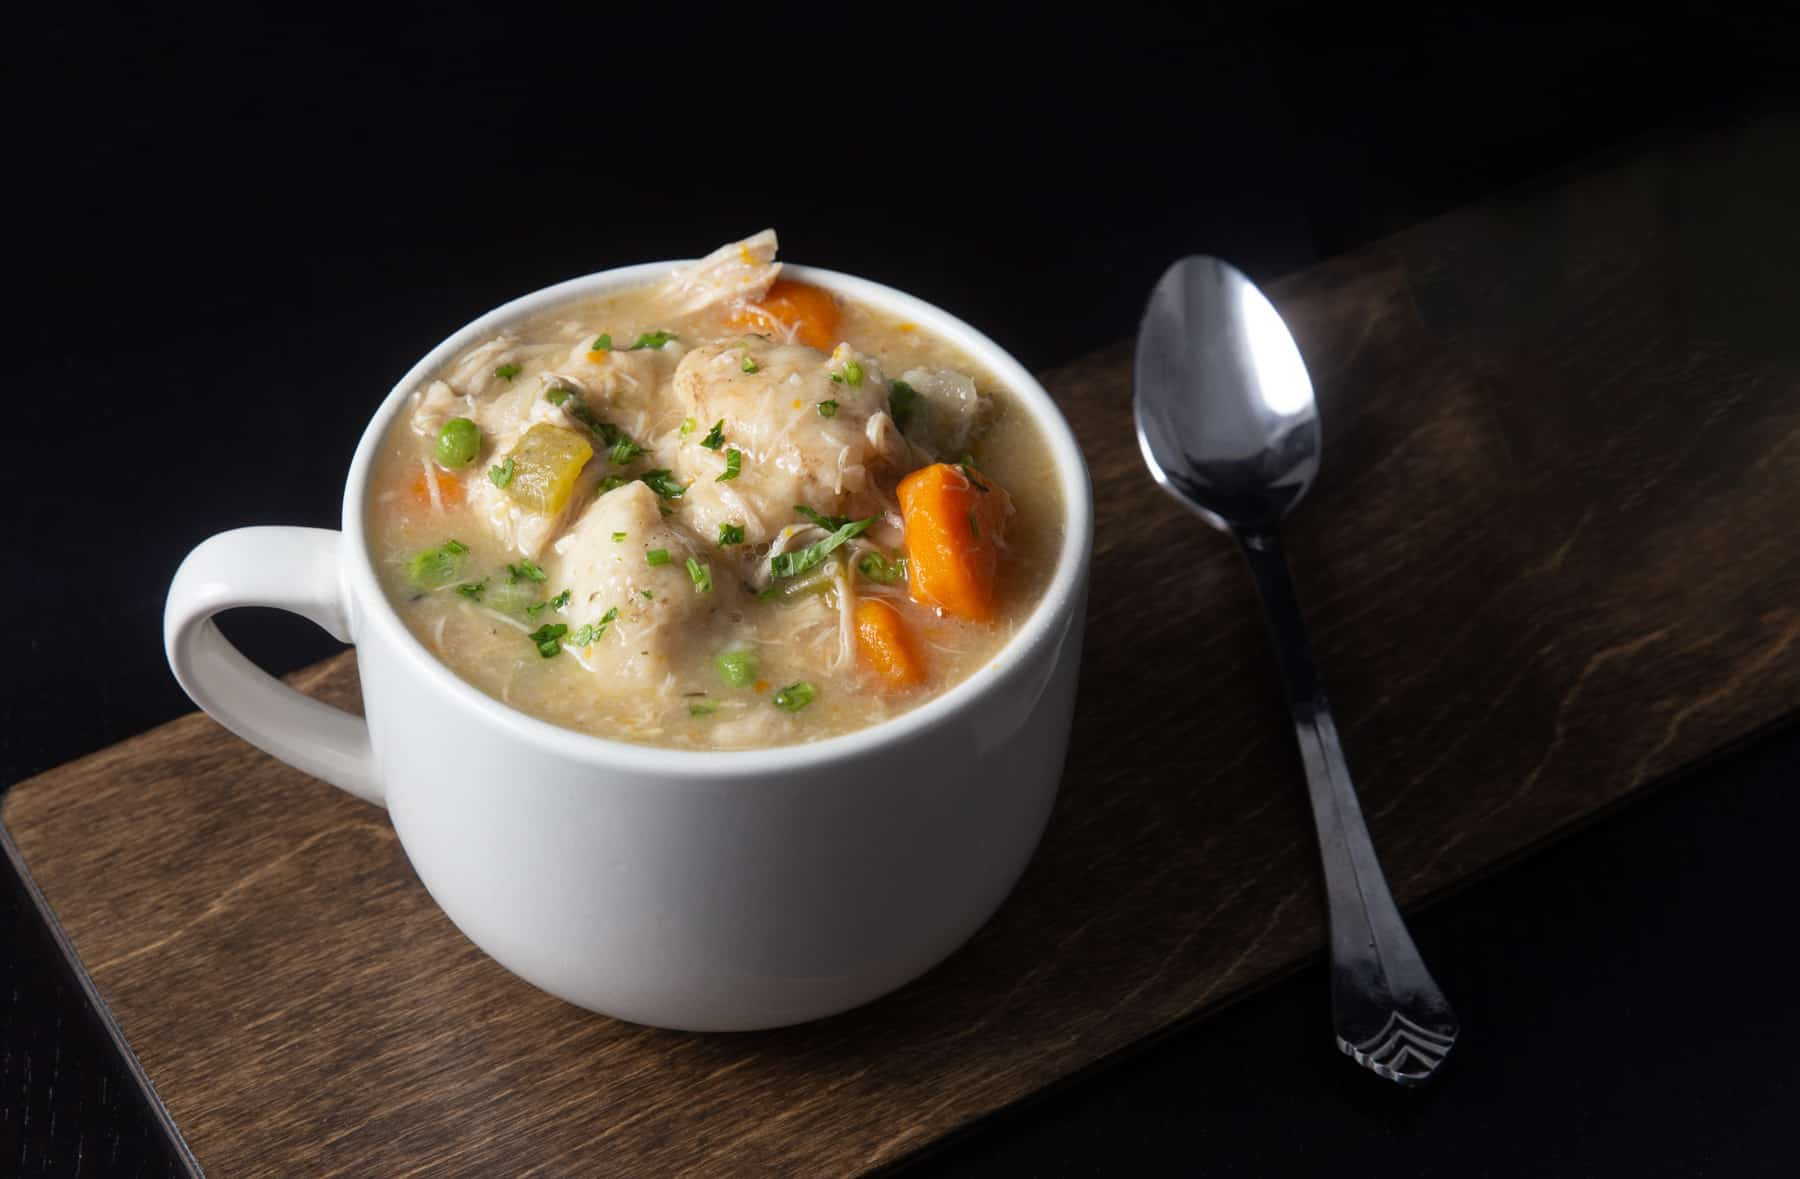 Instant Pot Chicken and Dumplings Recipe (Pressure Cooker Chicken and Dumplings): how to make satisfying Chicken and Dumplings - classic comfort food with tender chicken and fluffy homemade dumplings in aromatic chicken broth. An all-time family favorite! #instantpot #instantpotrecipes #instapot #pressurecooker #chickenrecipes #recipes